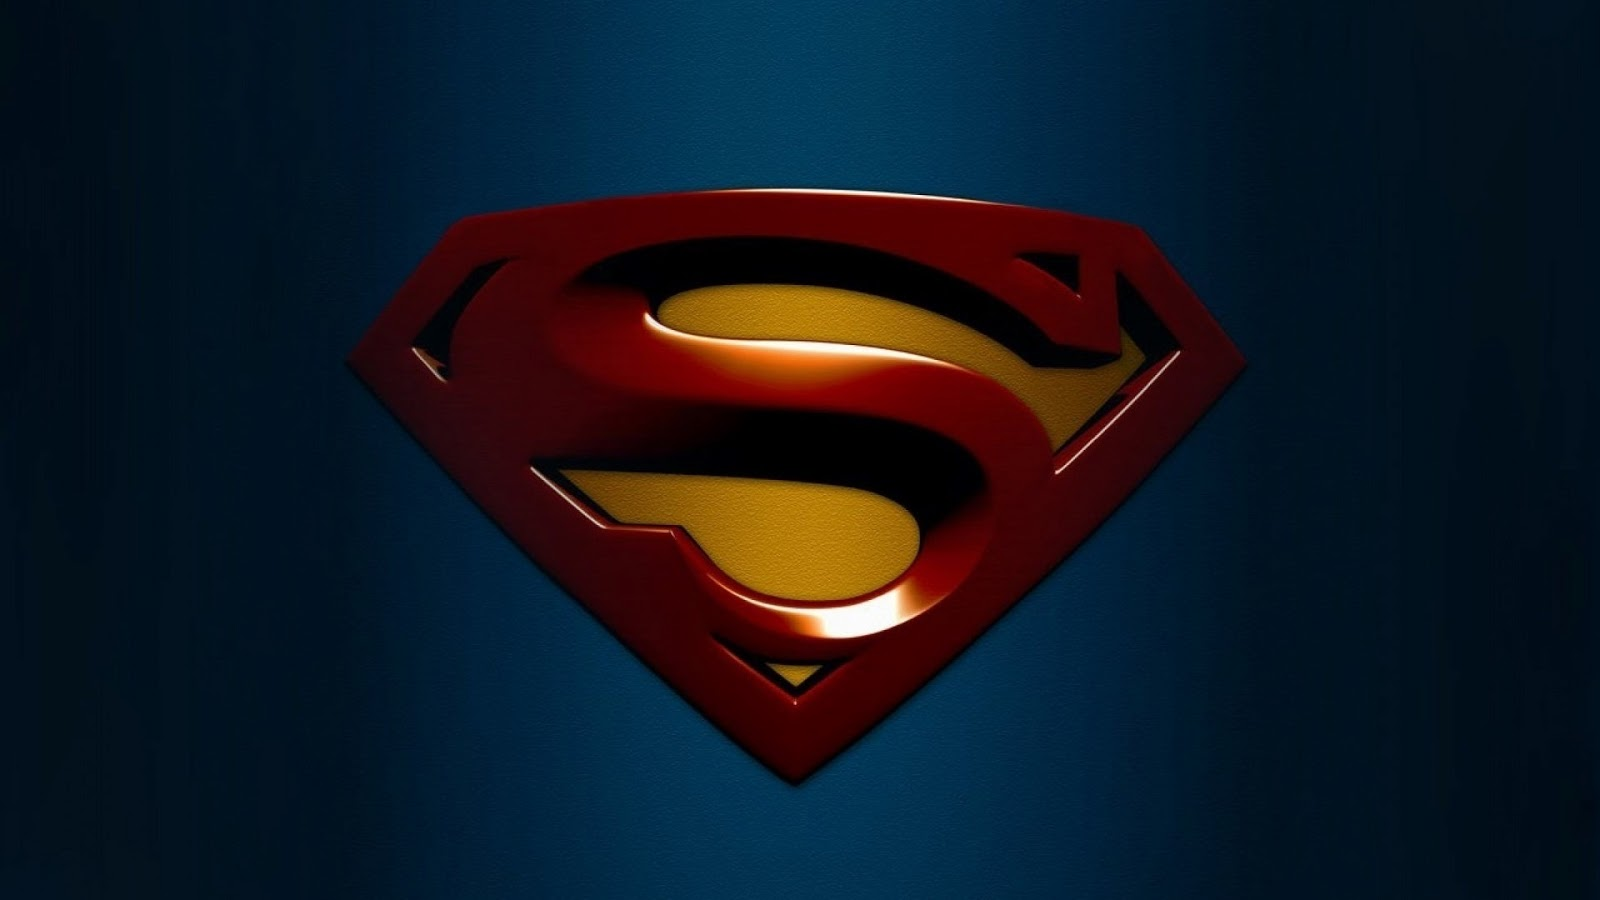 2013 Superman Logo Wallpaper Images amp Pictures   Becuo 1600x900